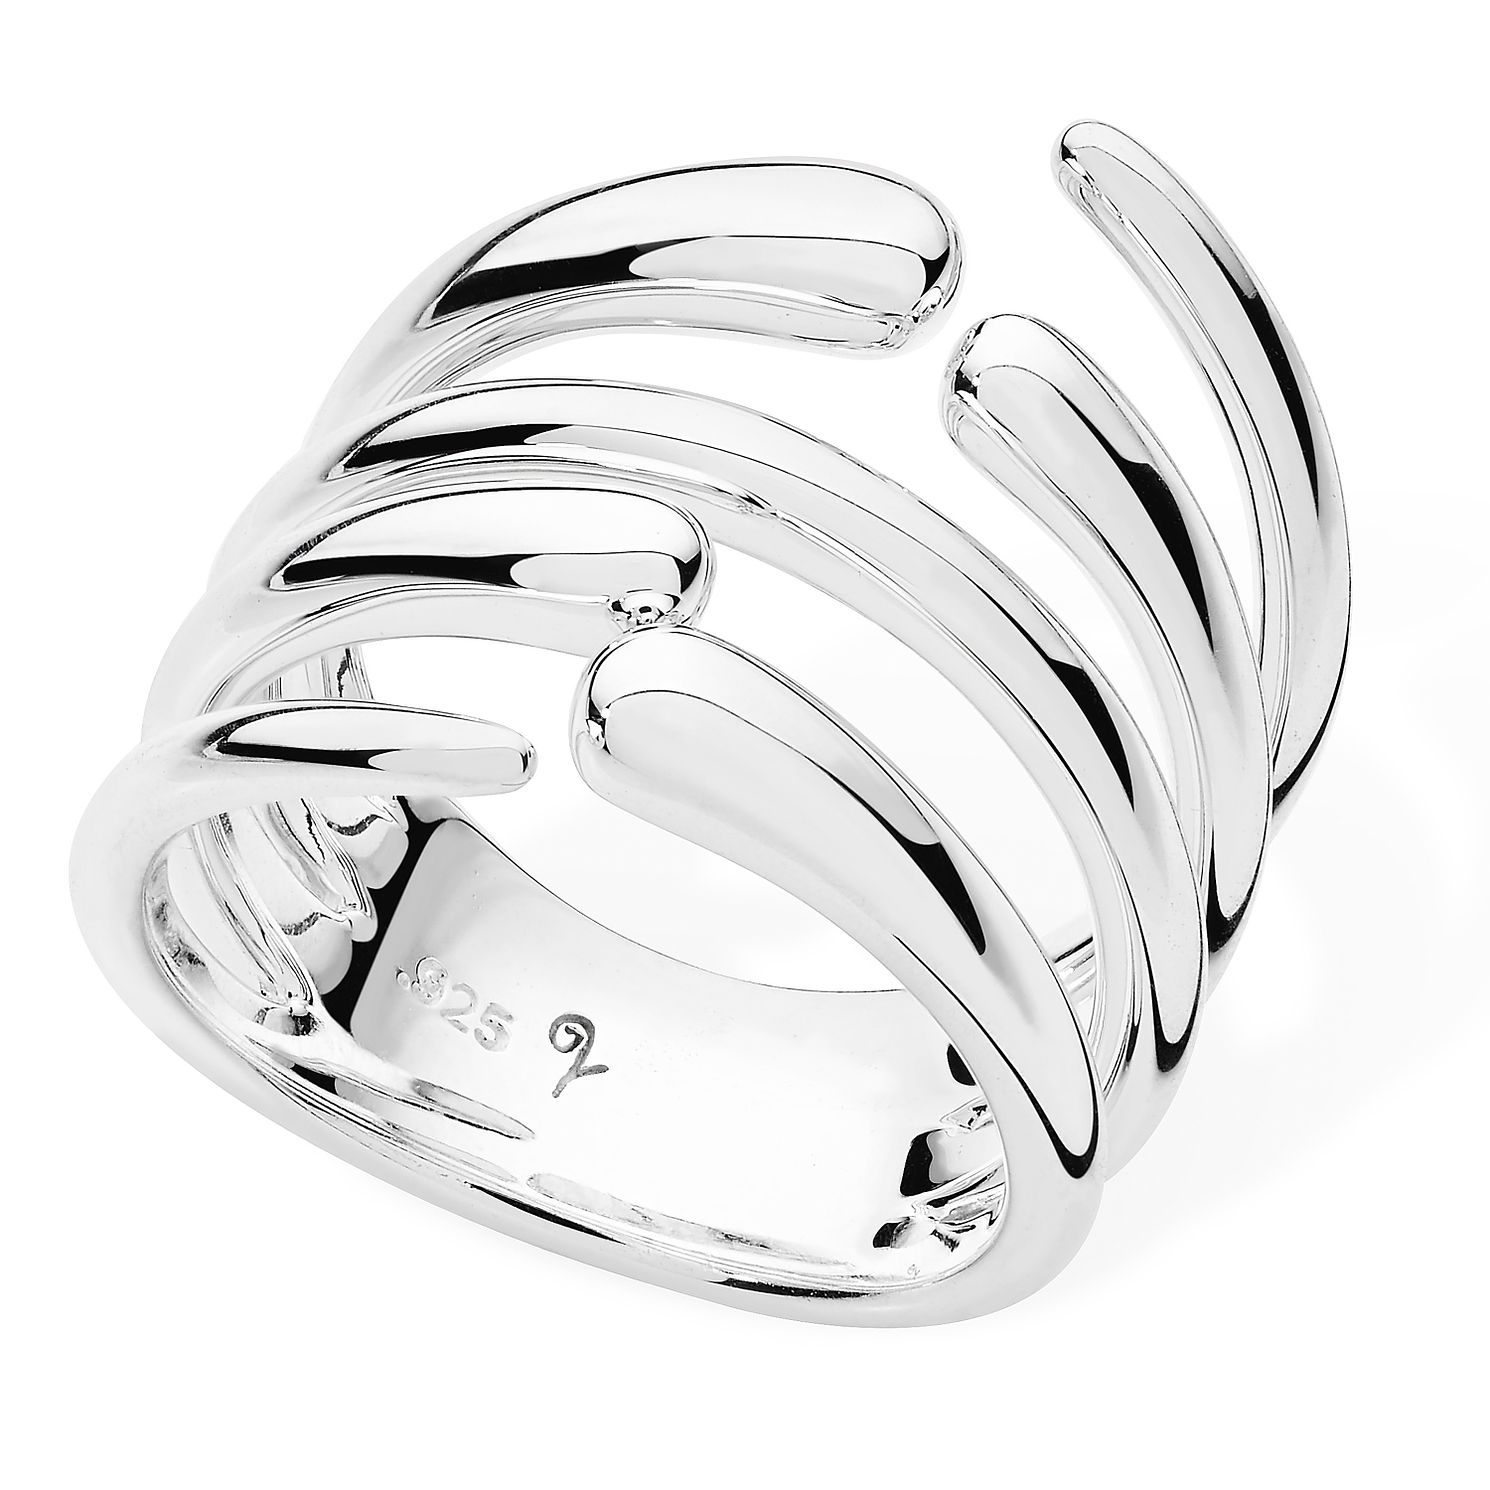 Lucy Quartermaine Silver 925 Multi Drop Ring - Product number 5952263